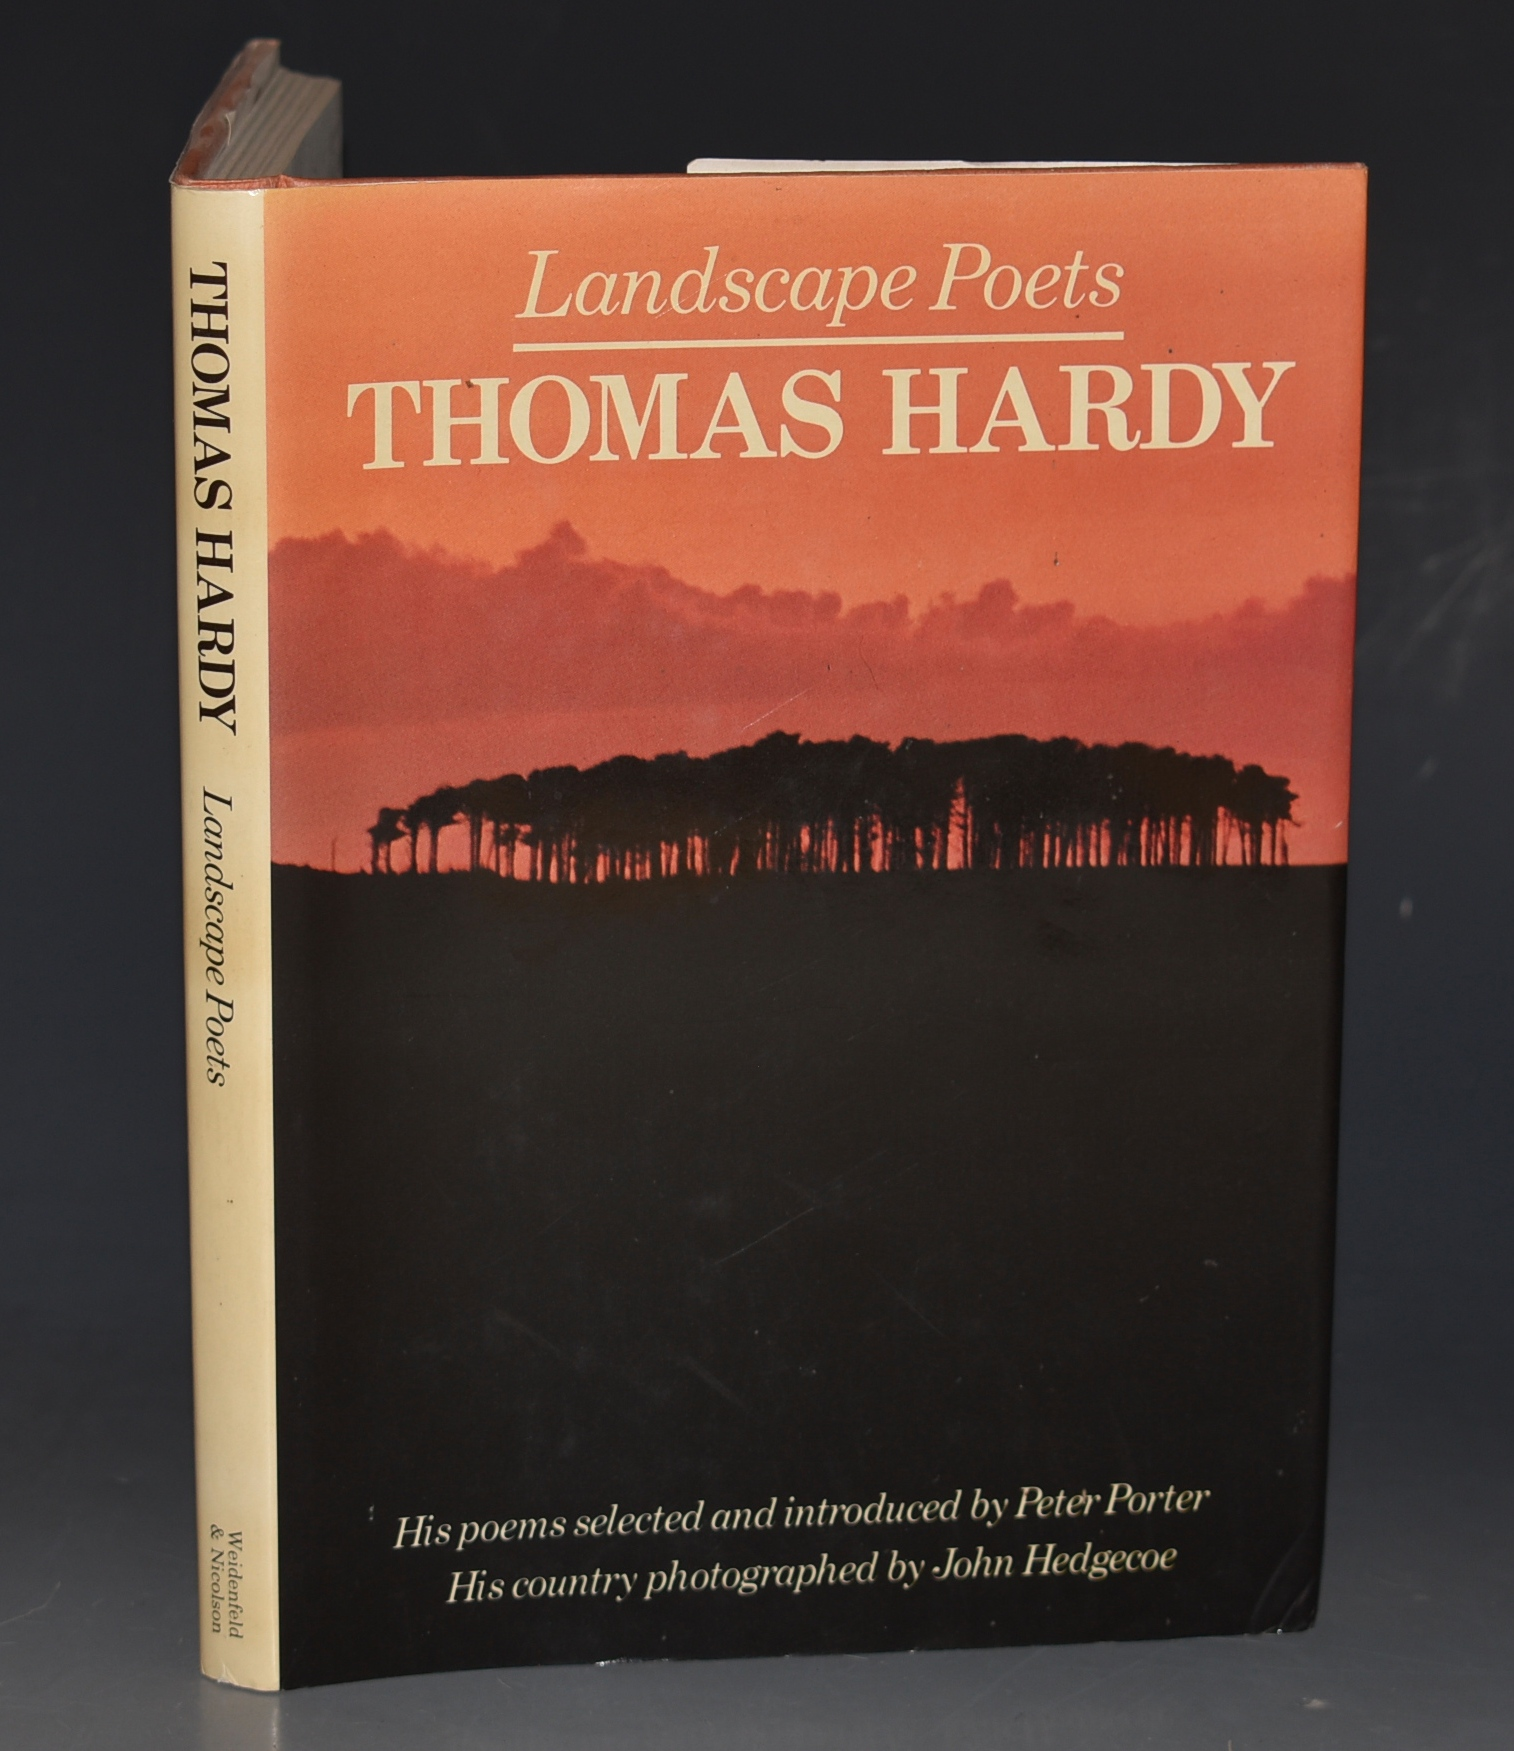 Image for Landscape Poets: Thomas Hardy. Selected and introduced by Peter Porter. Photographs by John Hedgecoe.